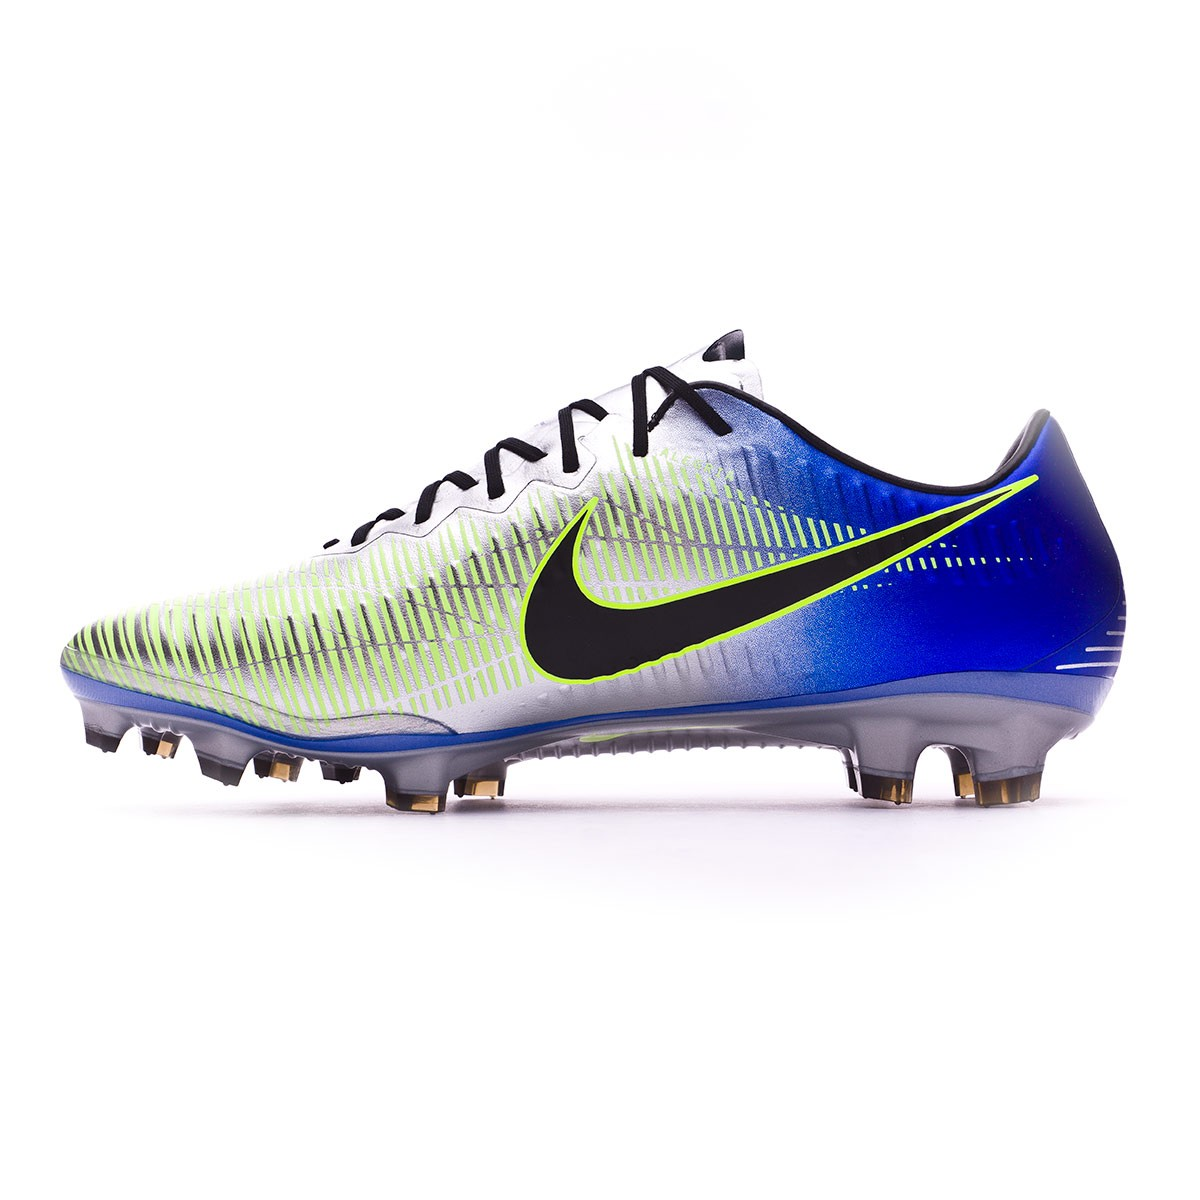 innovative design 8c73d 2cb3c Bota Mercurial Vapor XI FG Neymar Racer blue-Black-Chrome-Volt